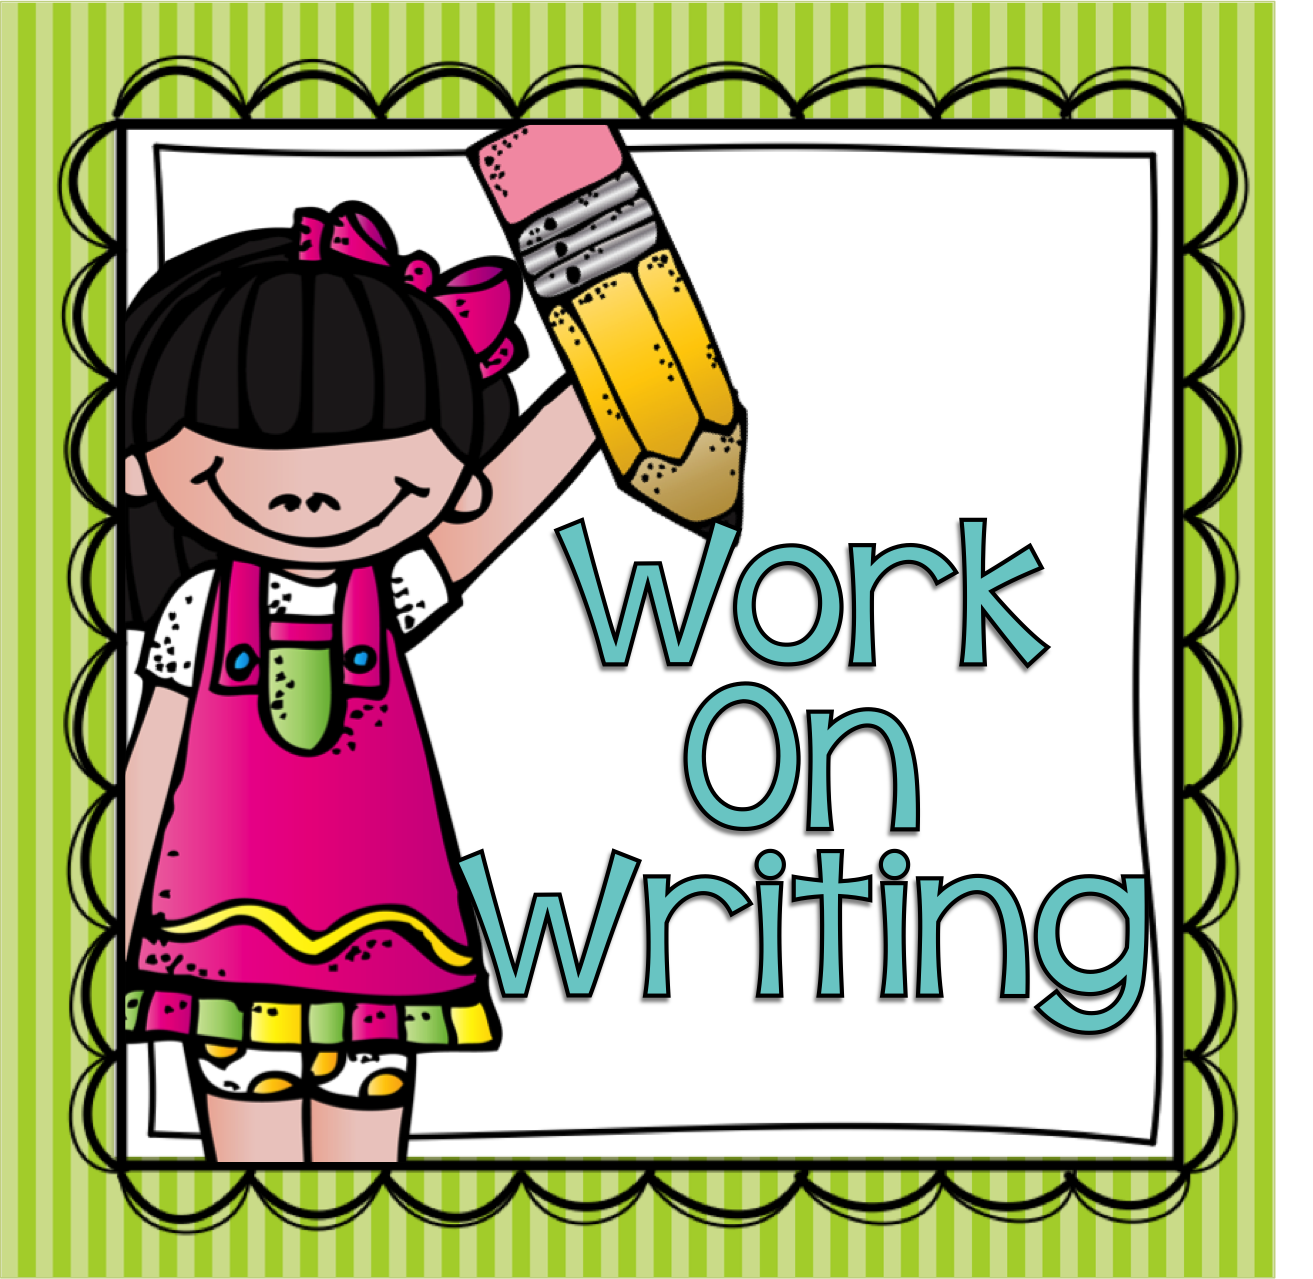 Daily 5 Work On Writing Clipart.